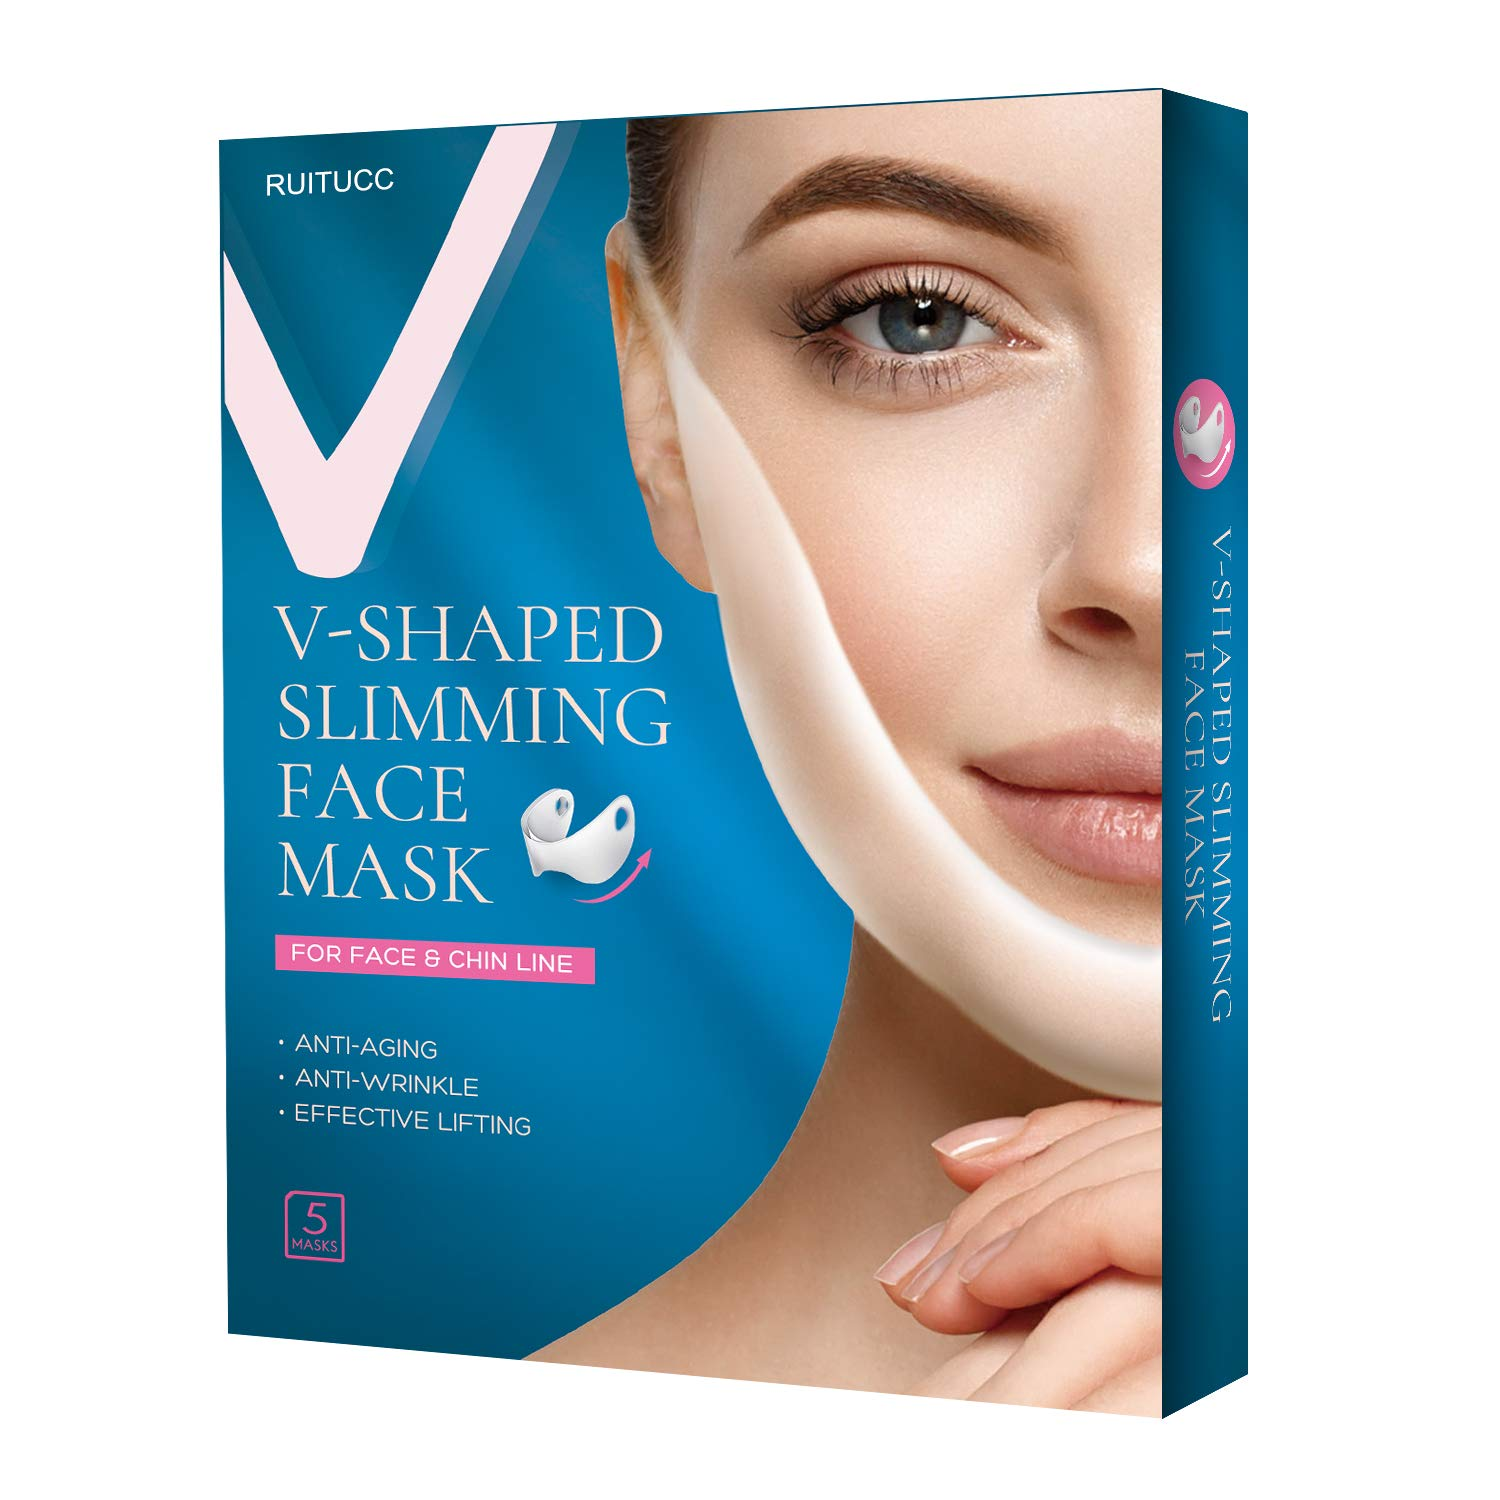 RUITUCC Double Chin Reducer V Shaped Slimming Face Mask Compact Simple V Shape Mask Chin Mask Face Slimming Strap V Line Chin Lift Mask